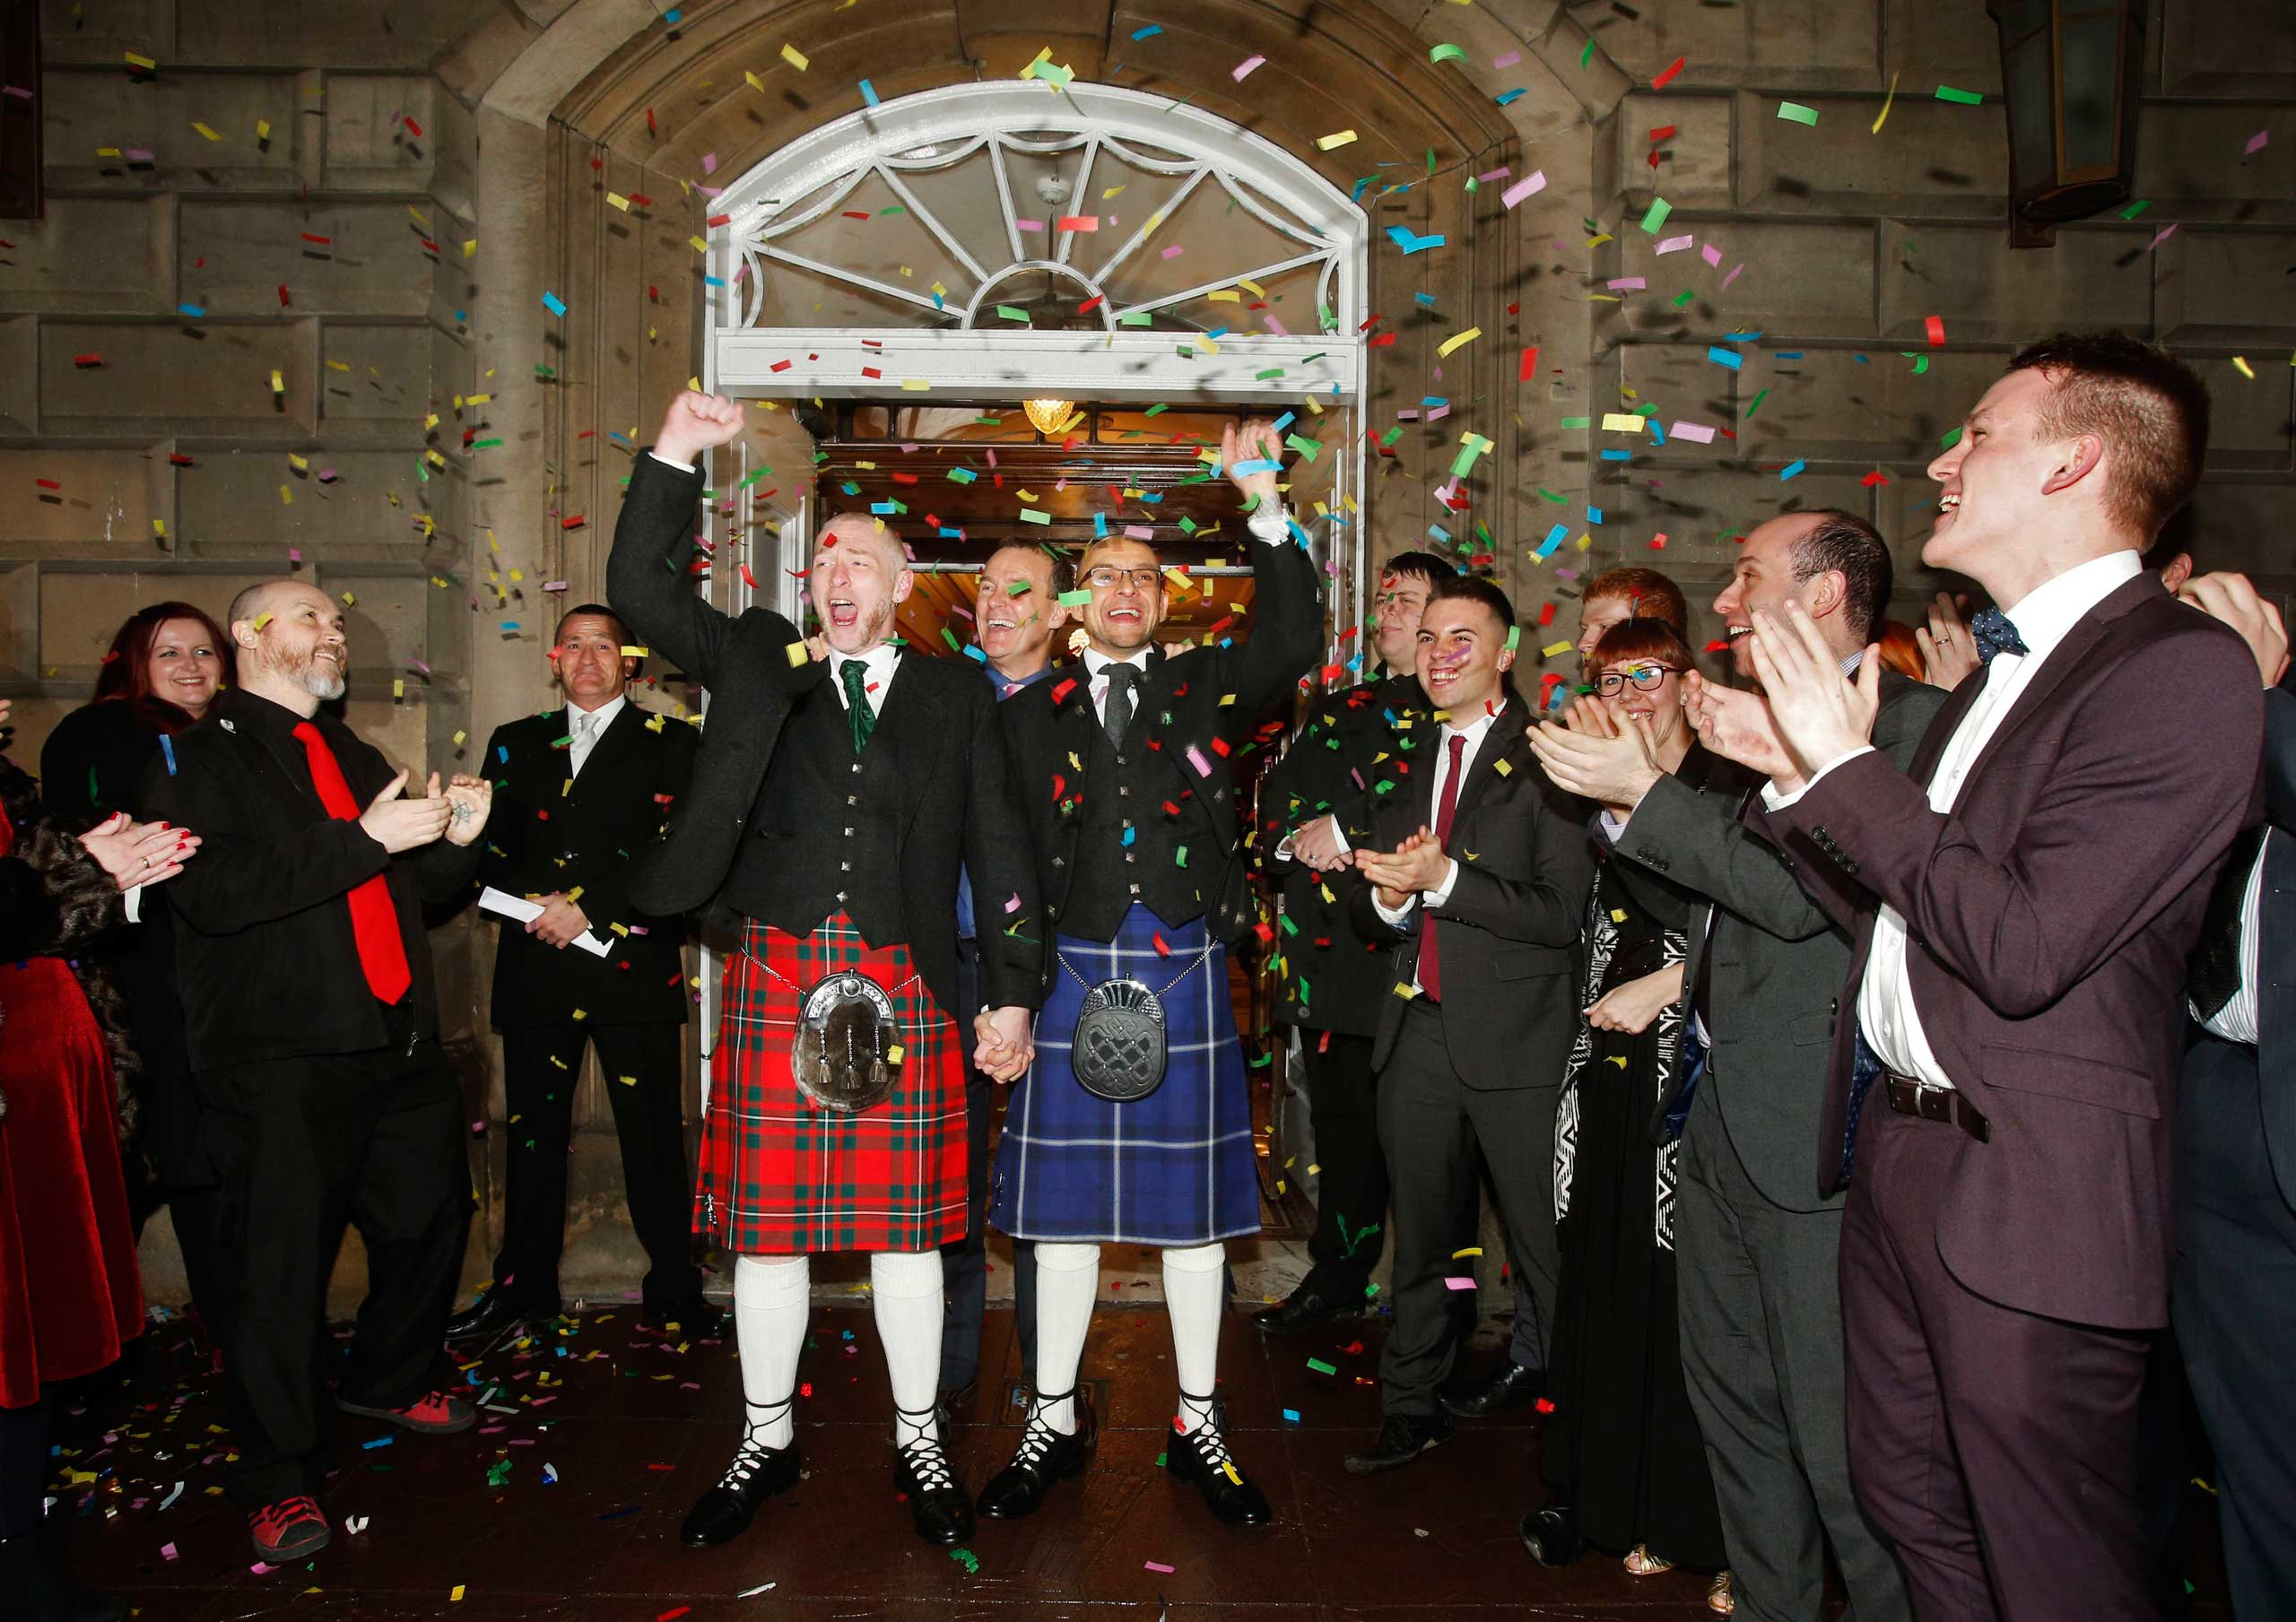 Malcolm Brown (left) and Joe Schofield, both 42, after they were married in Glasgow, UK, in one of Scotland's first same-sex weddings.